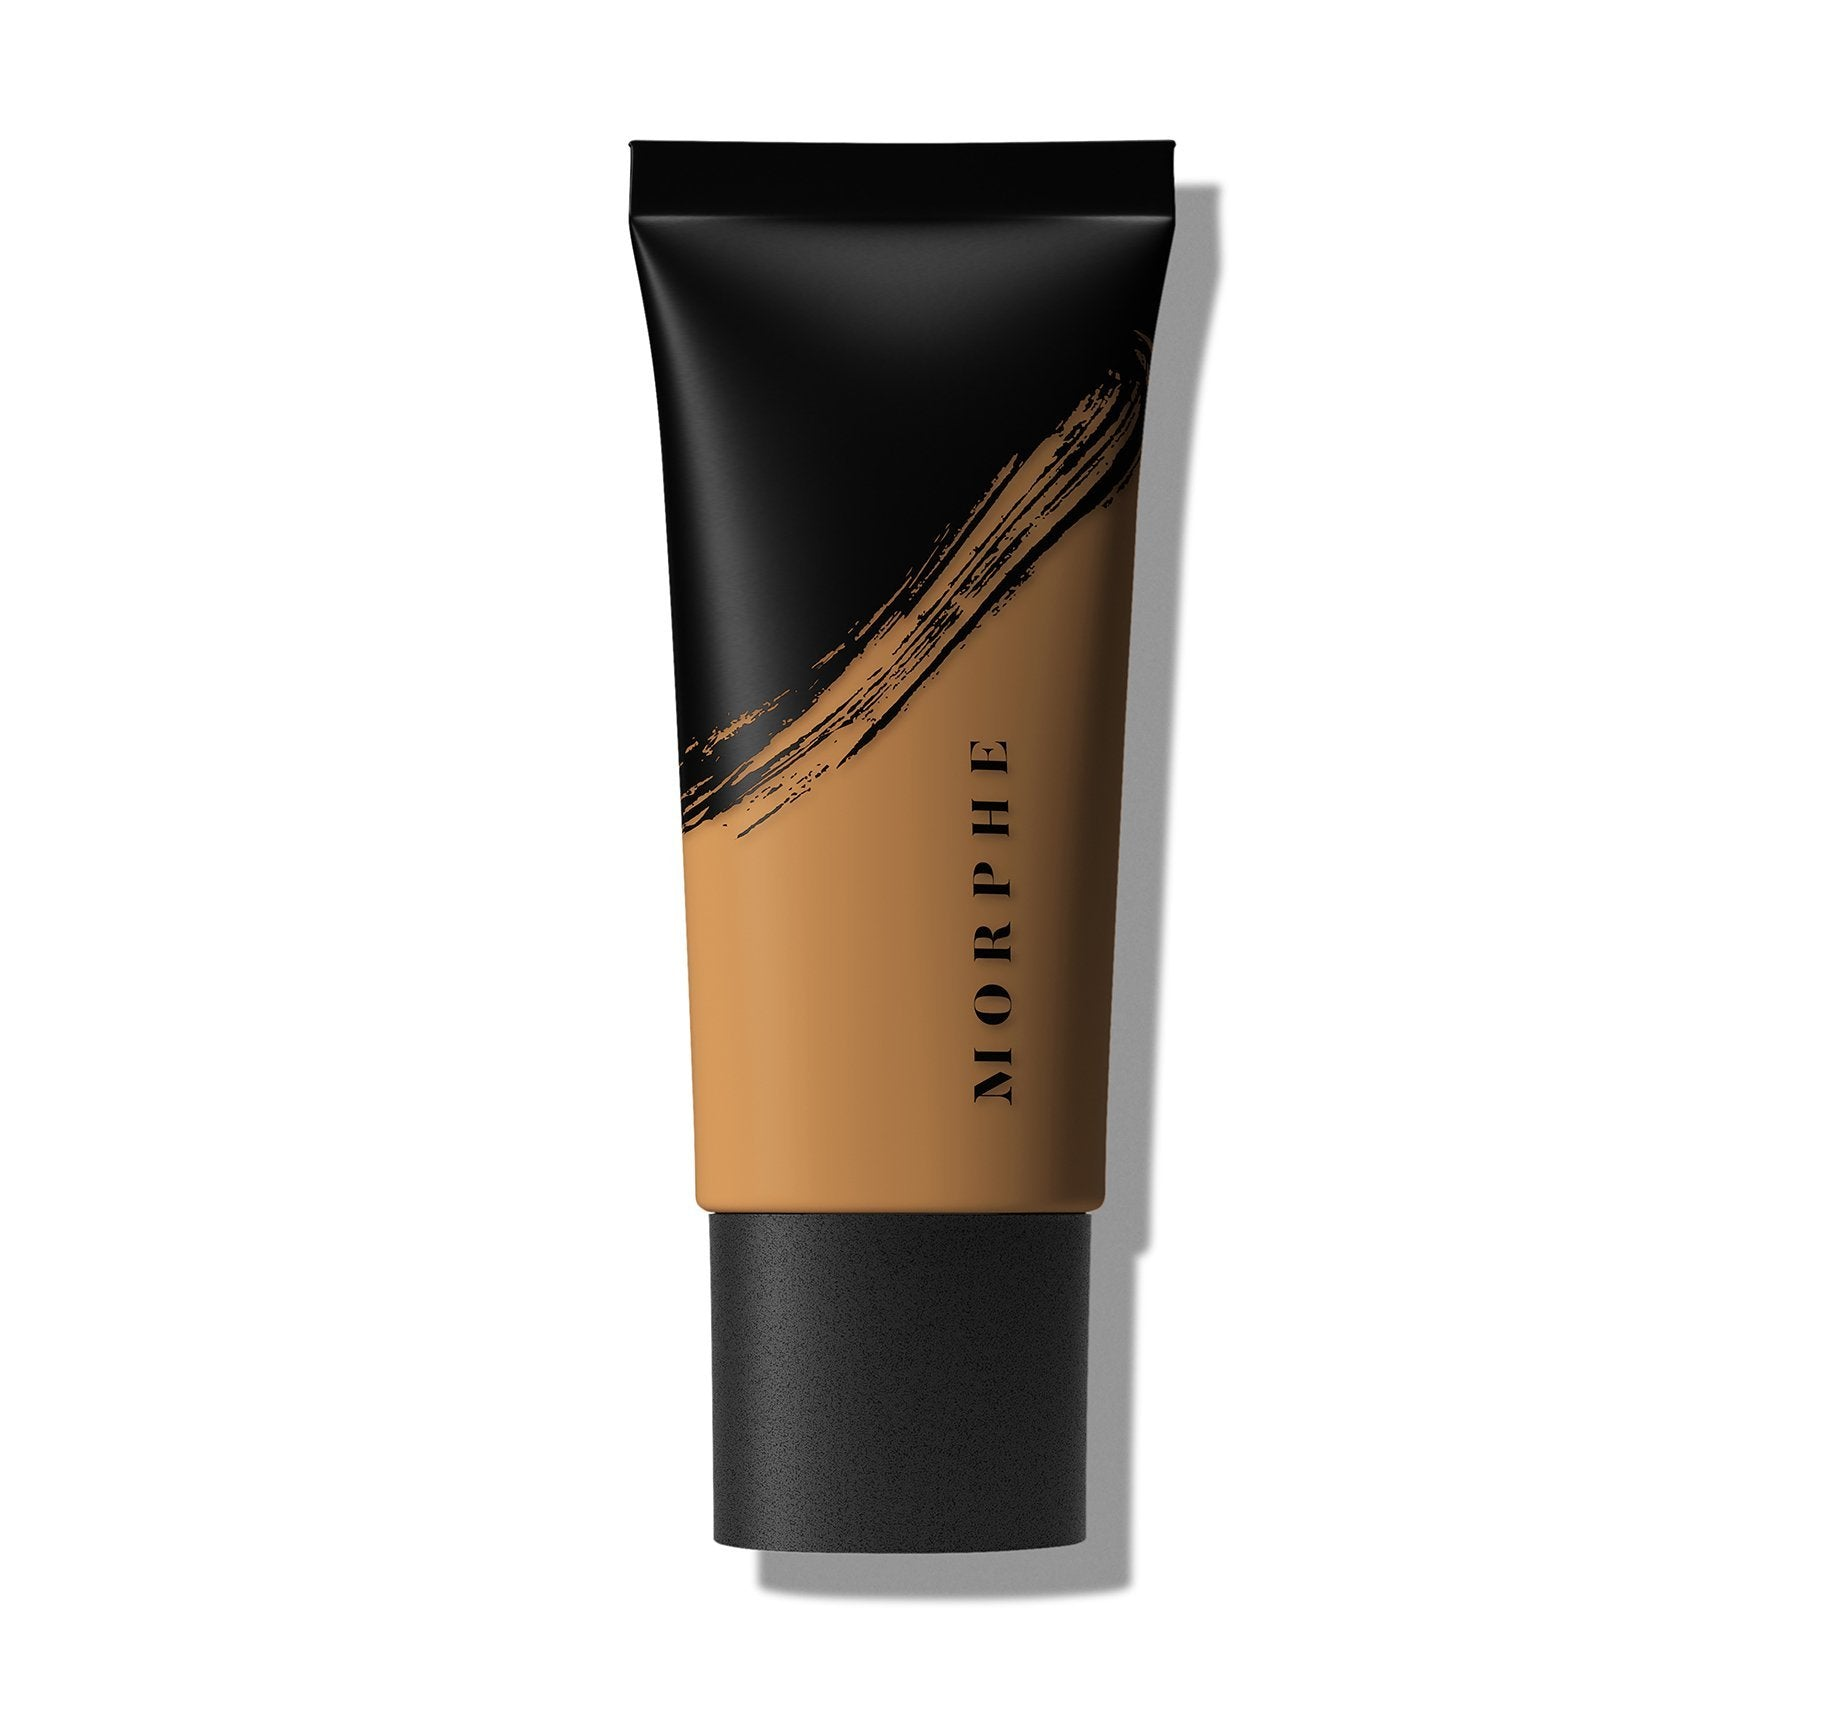 FLUIDITY FULL-COVERAGE FOUNDATION - F3.19, view larger image